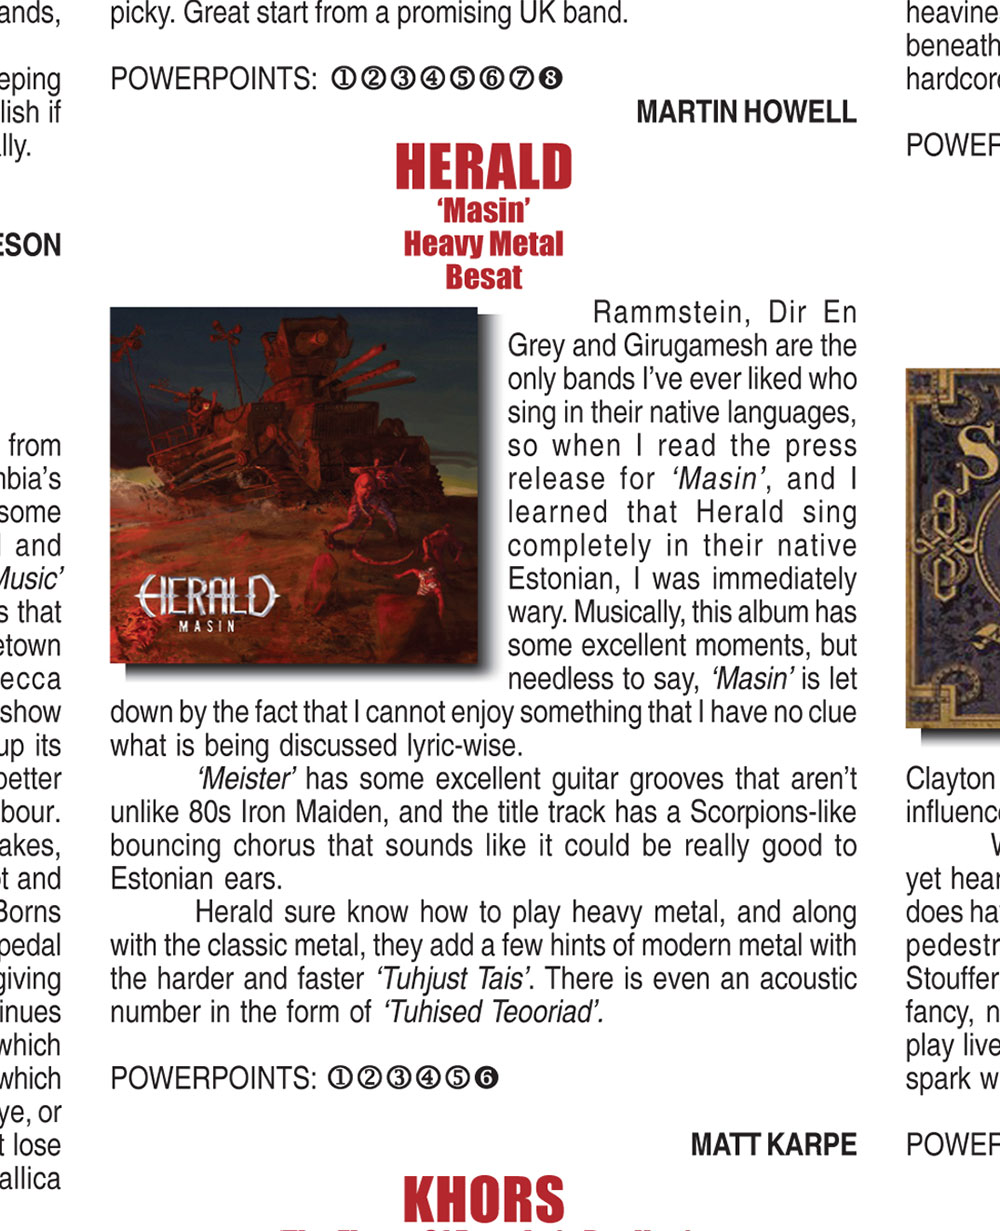 Powerplay_Herald